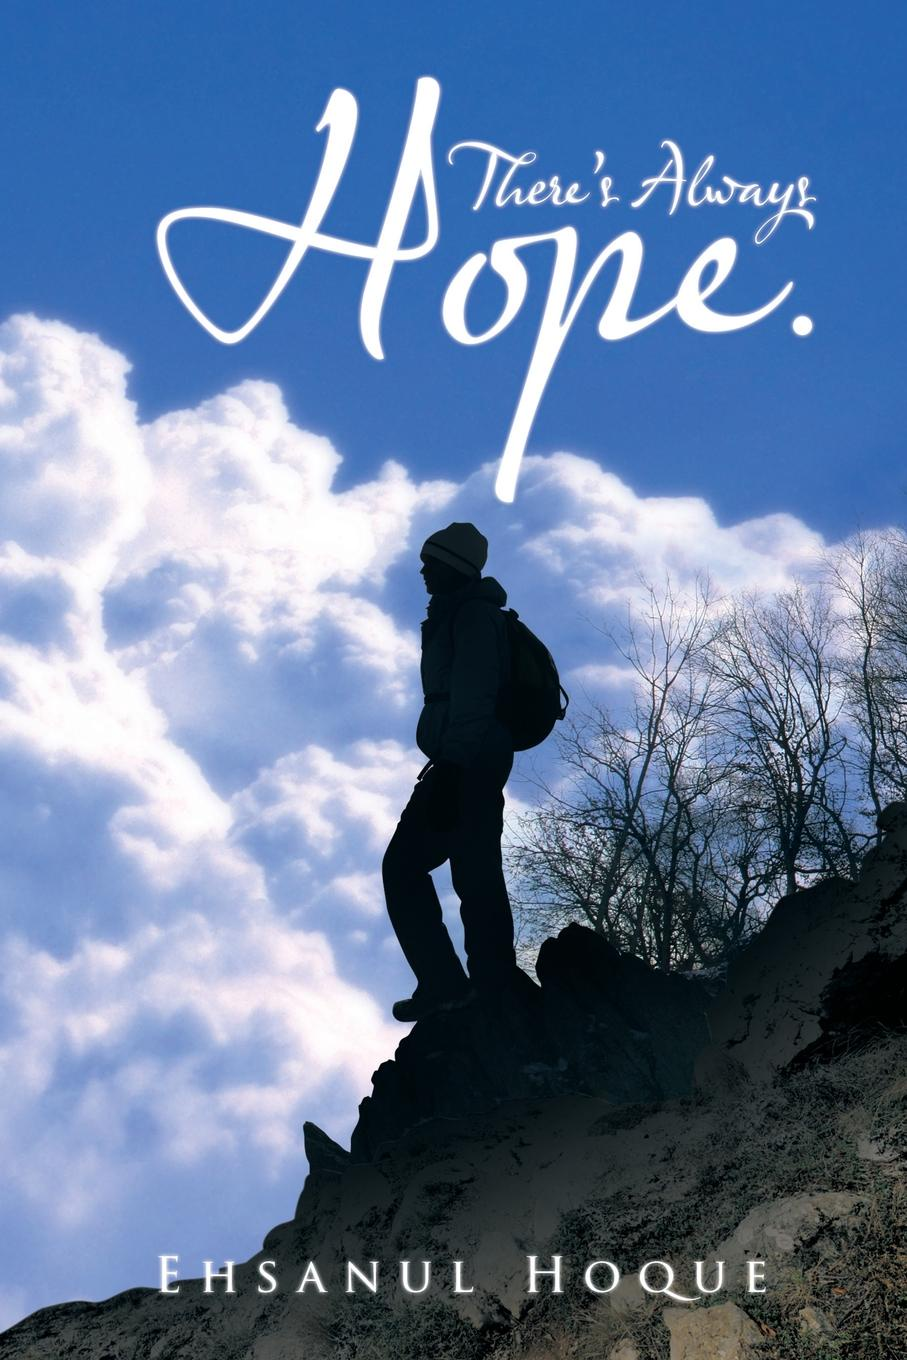 Ehsanul Hoque Theres Always Hope.